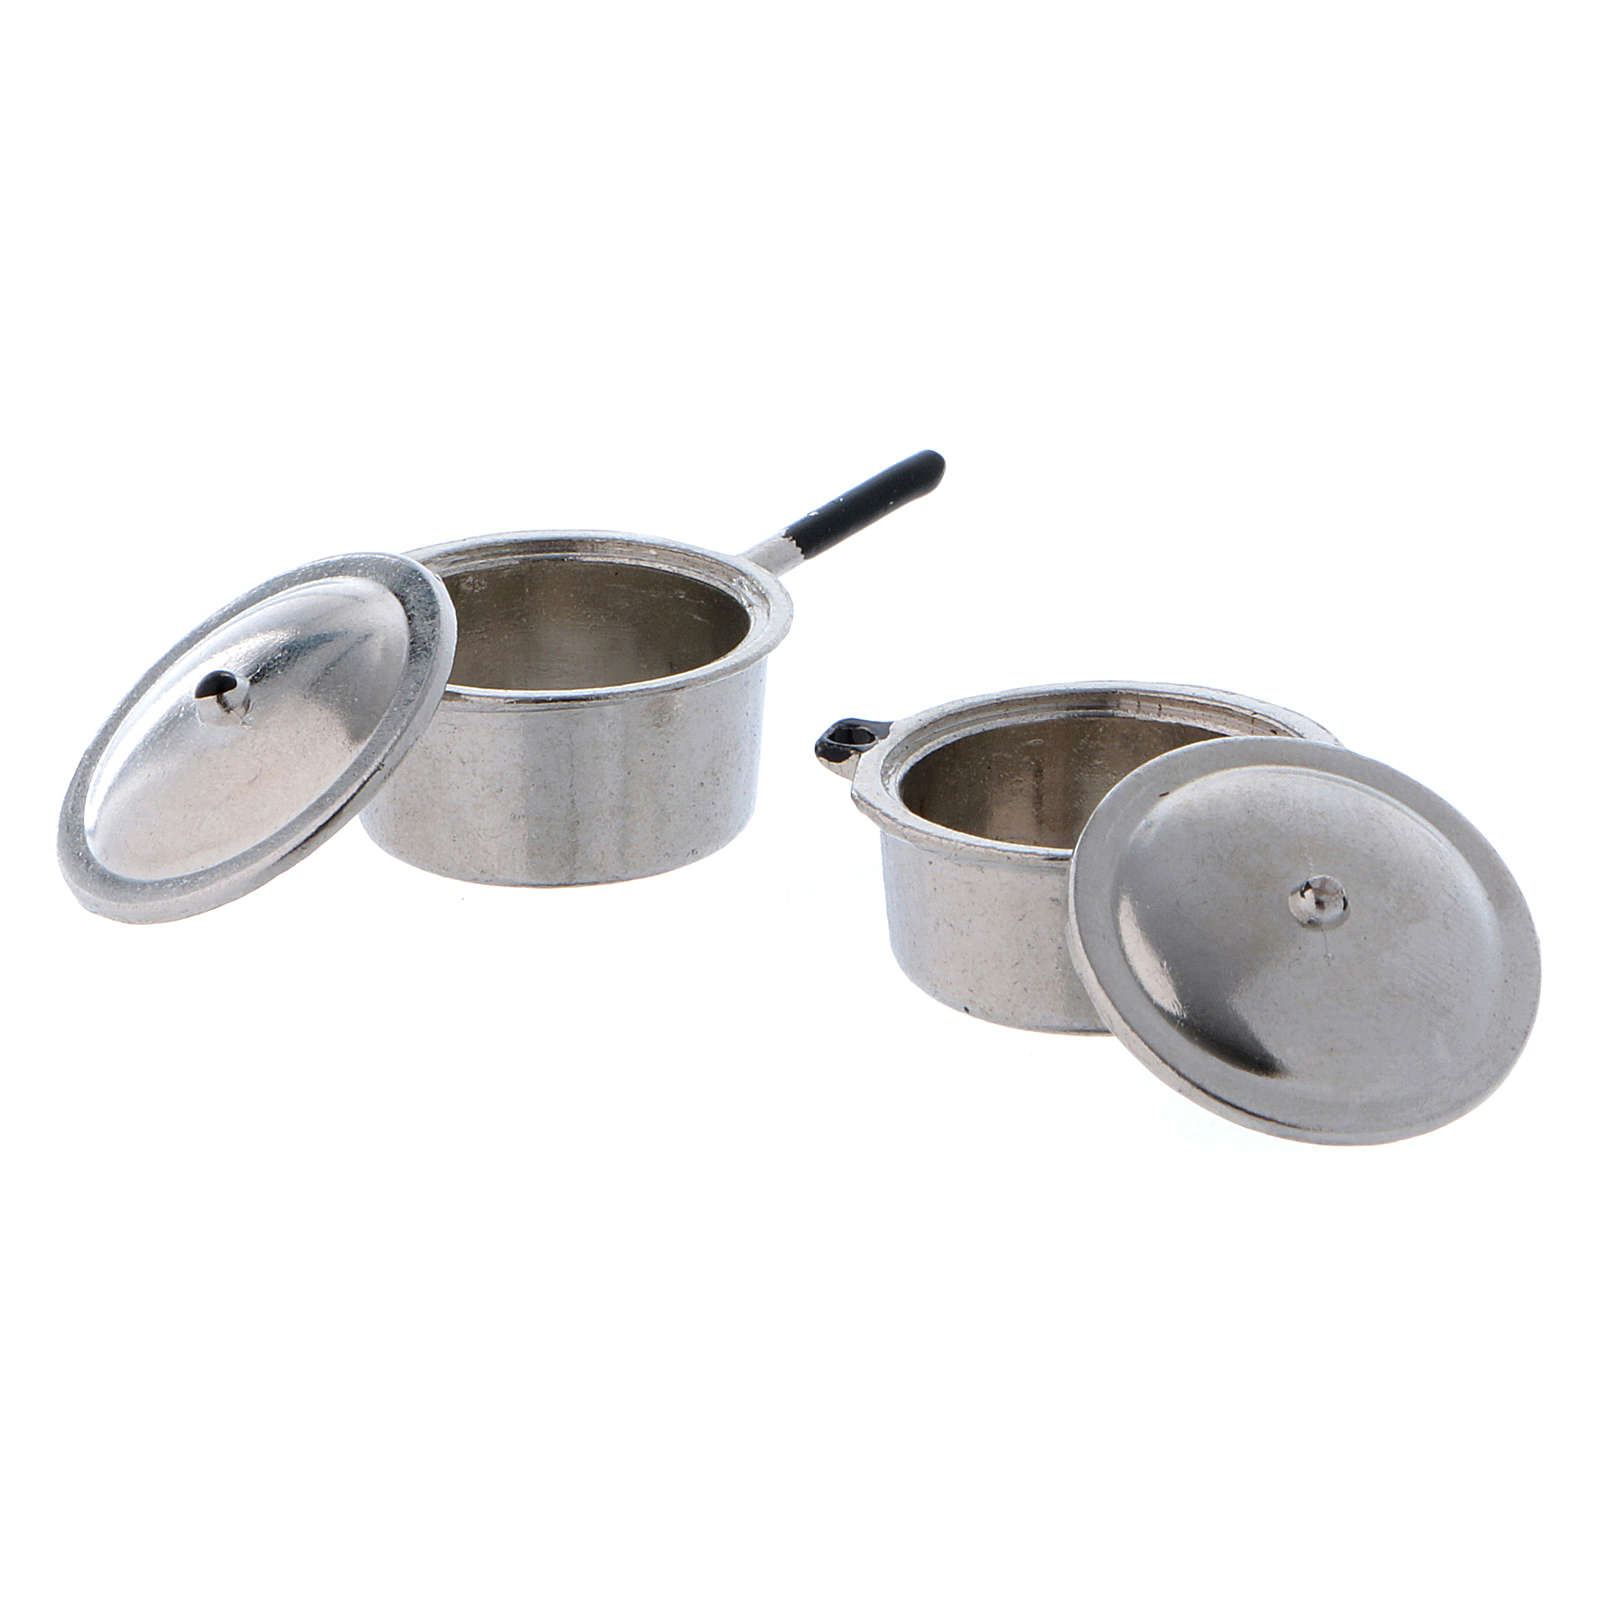 Steel Pots with Covers diameter 2 cm 4